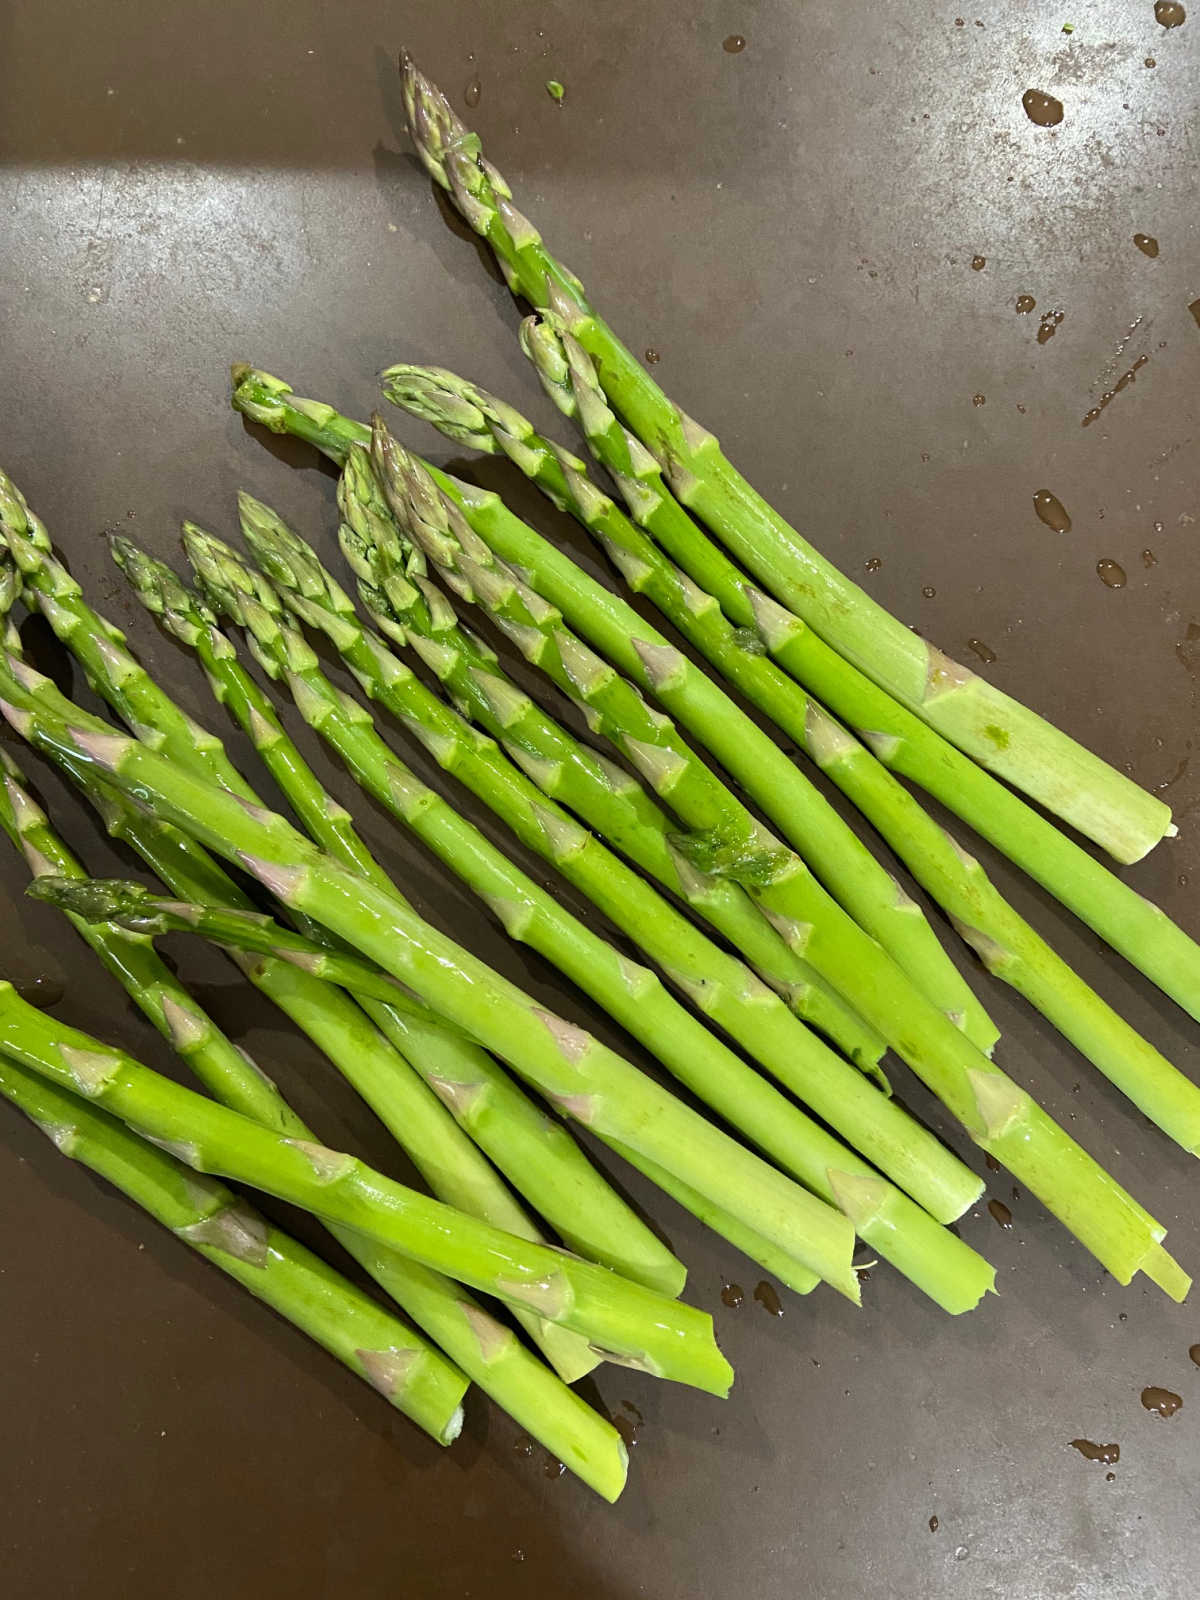 Bunch of asparagus laying on a counter